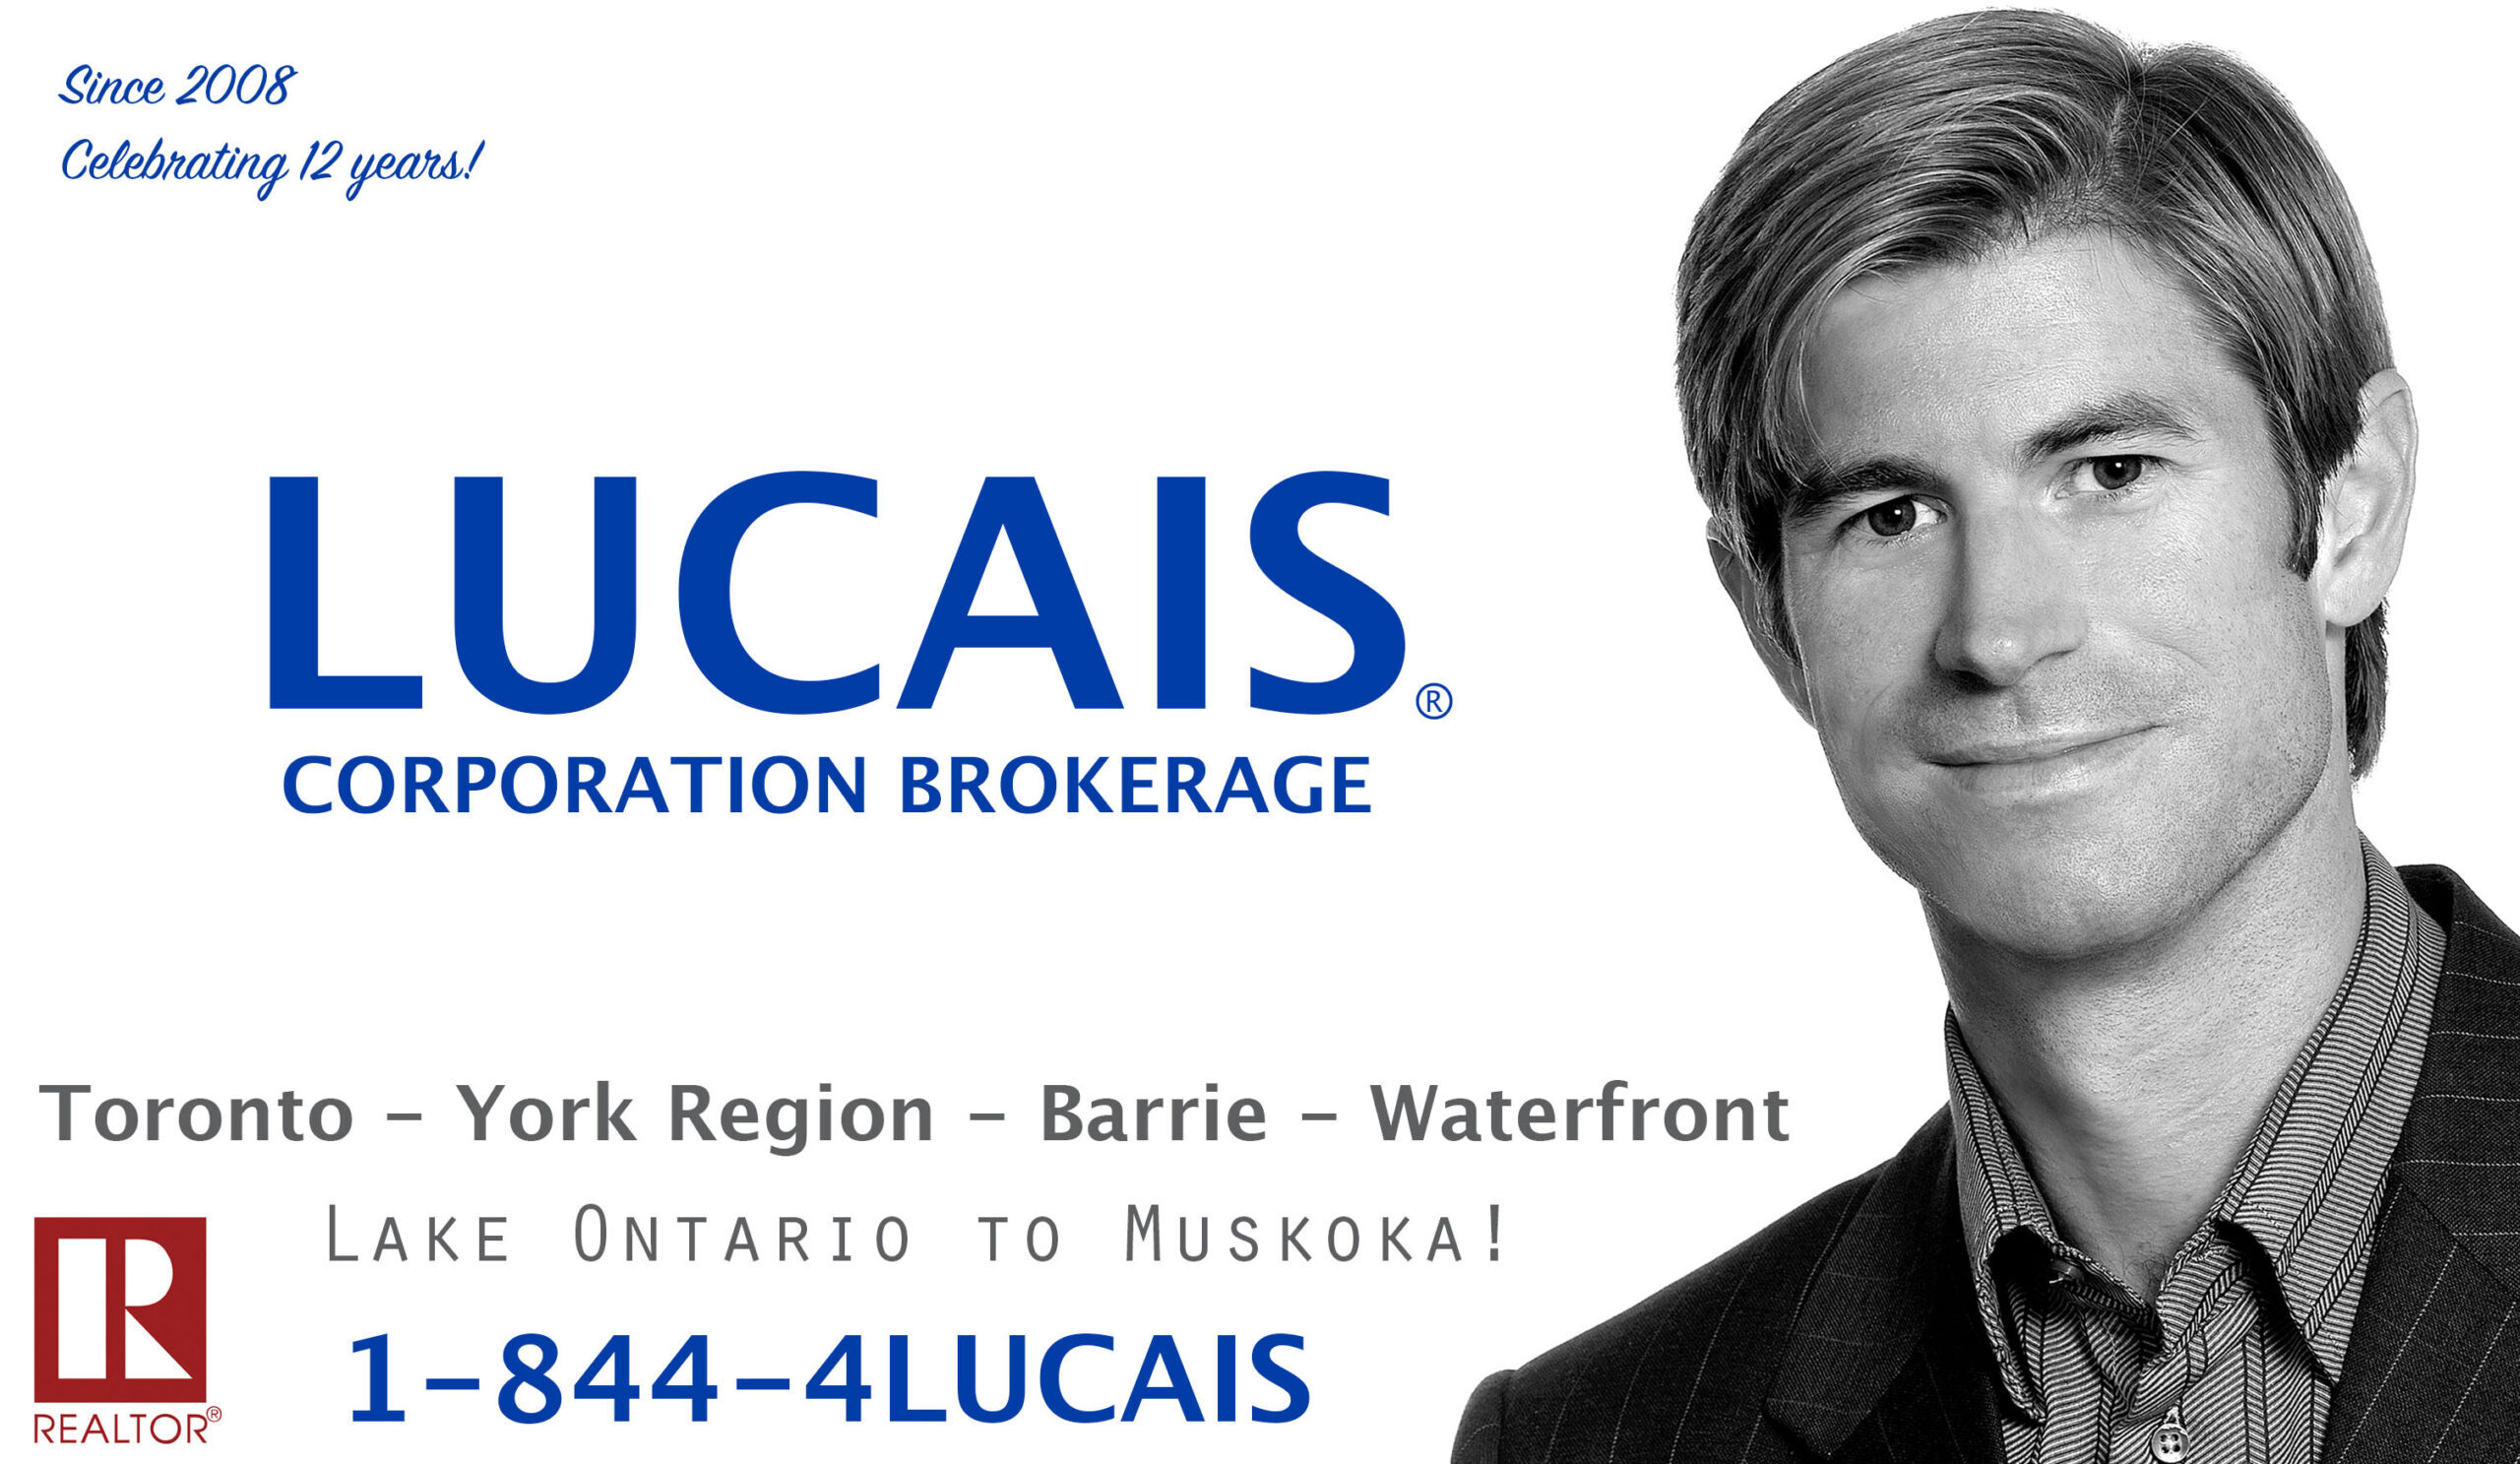 LUCAIS CORP. BROKERAGE